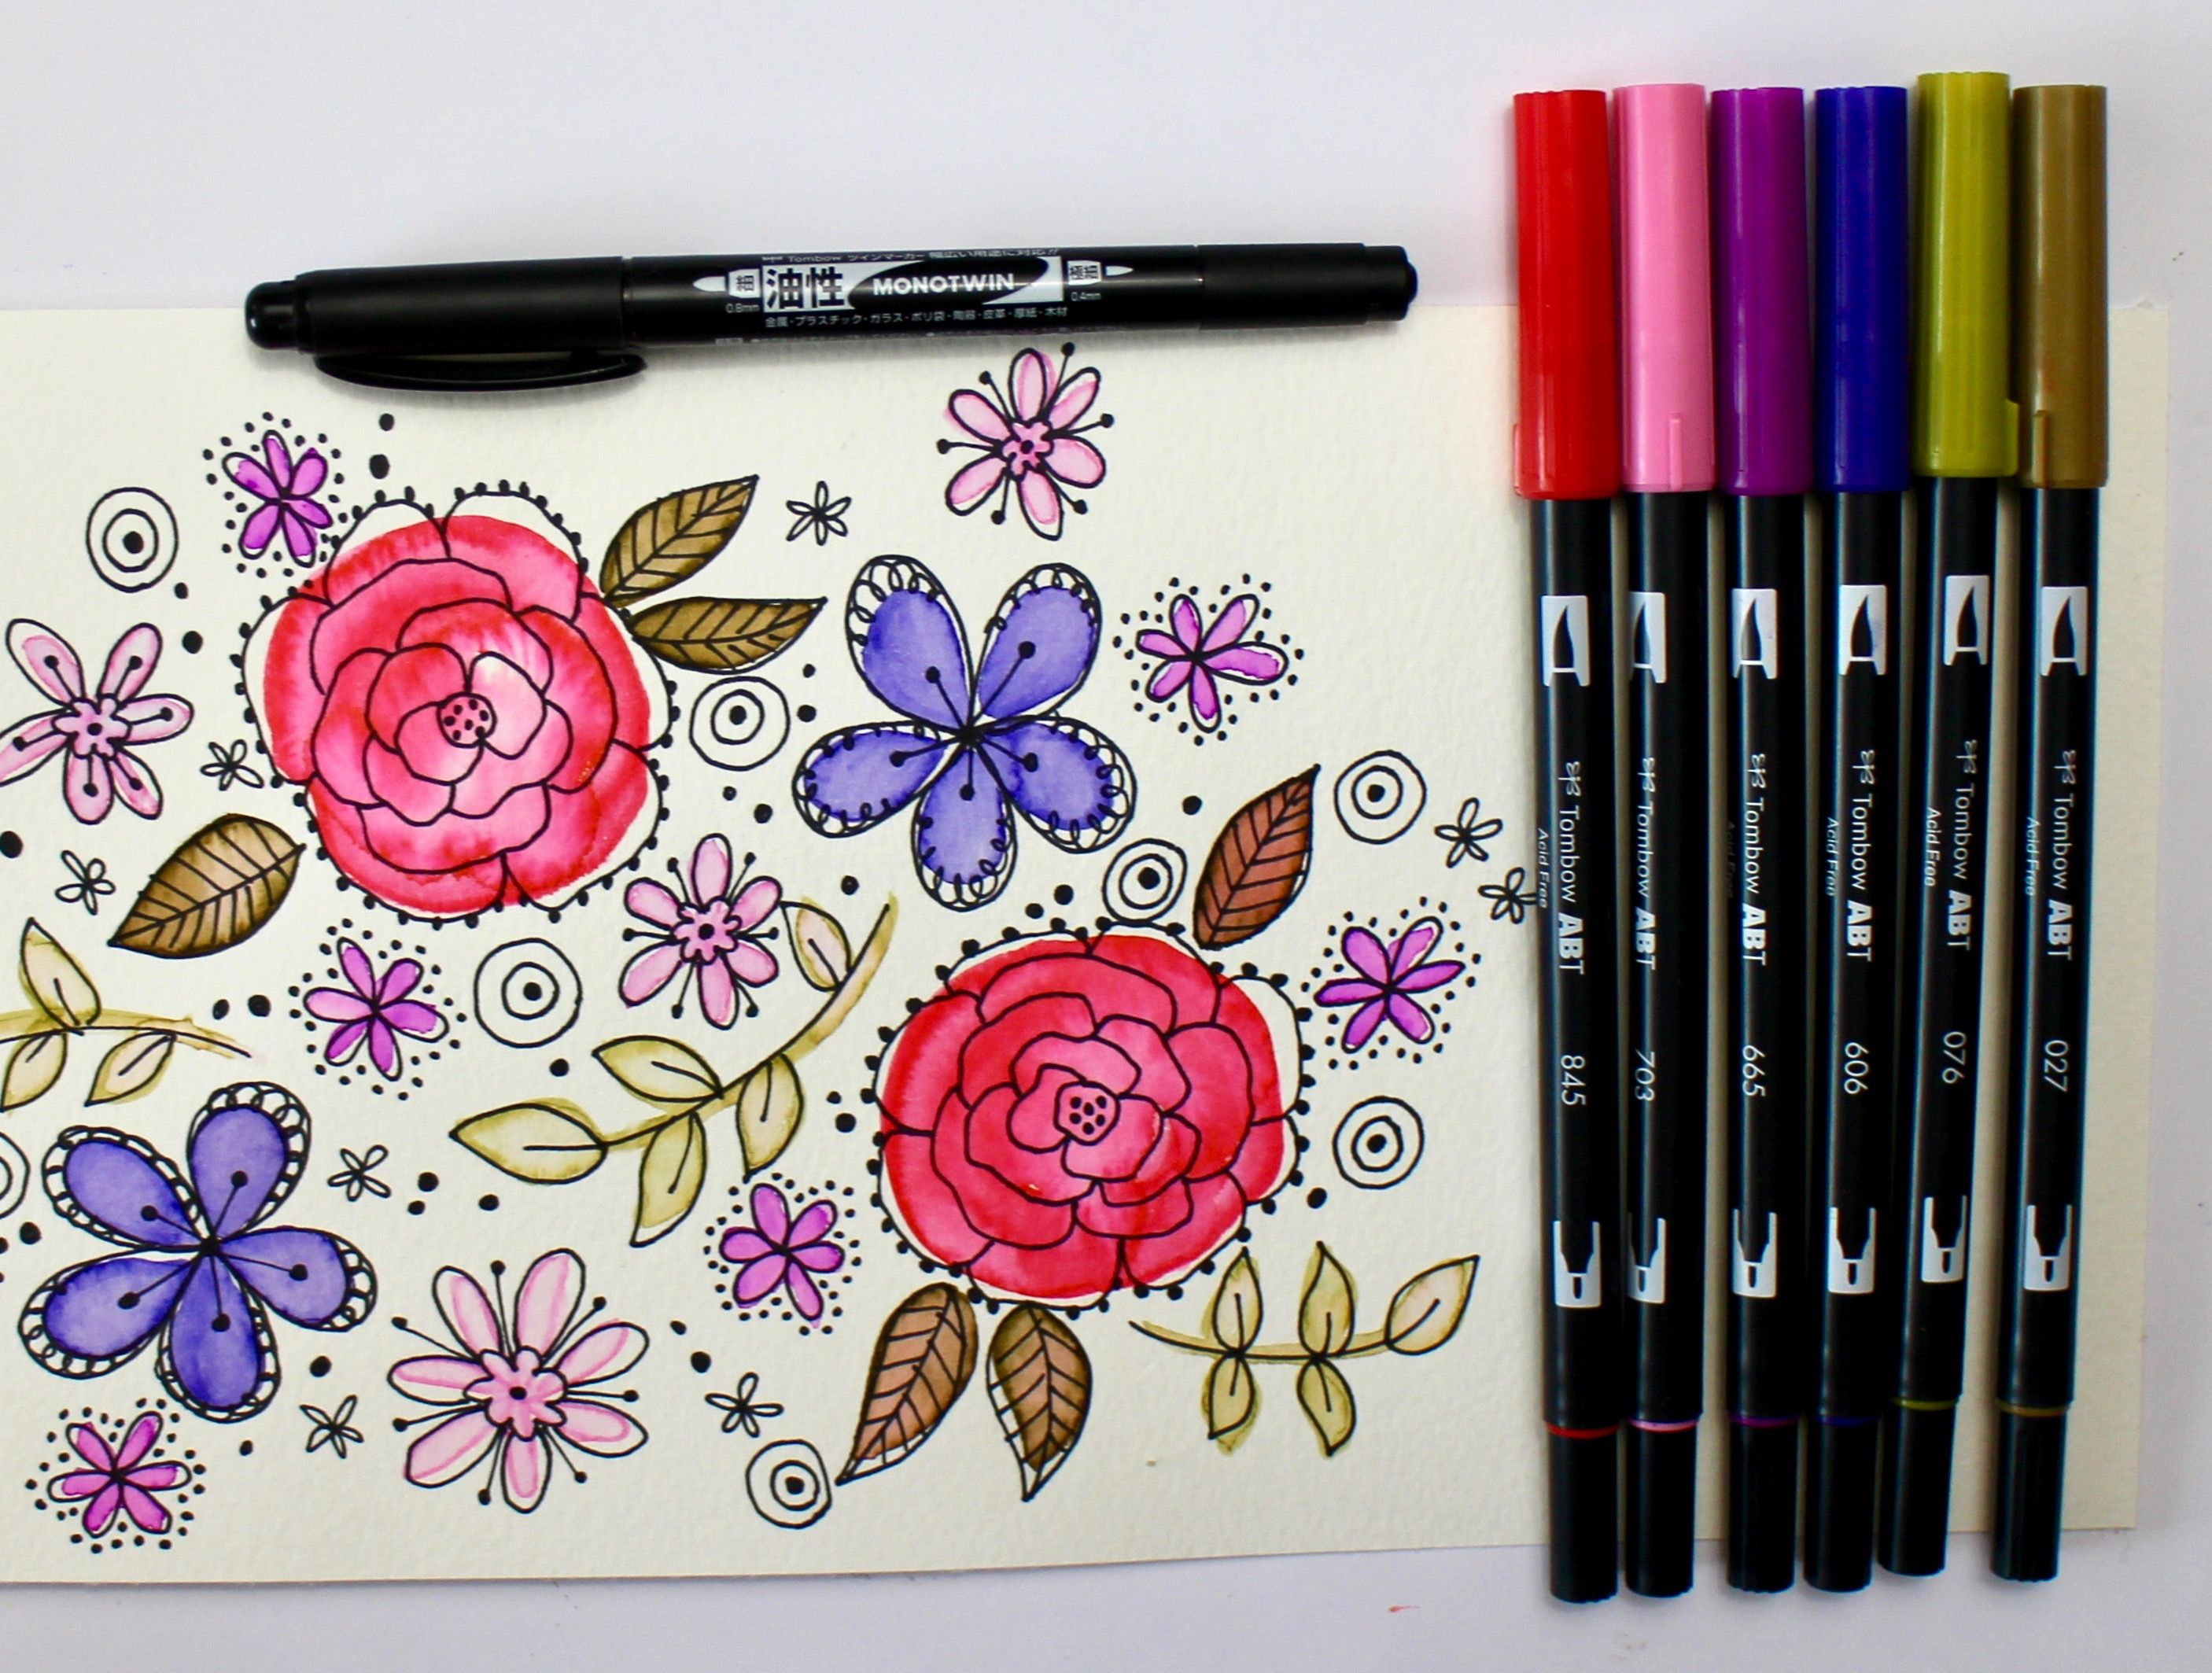 Marie New Again Retro Palette Tombow Usa Blog Brush Pen Art